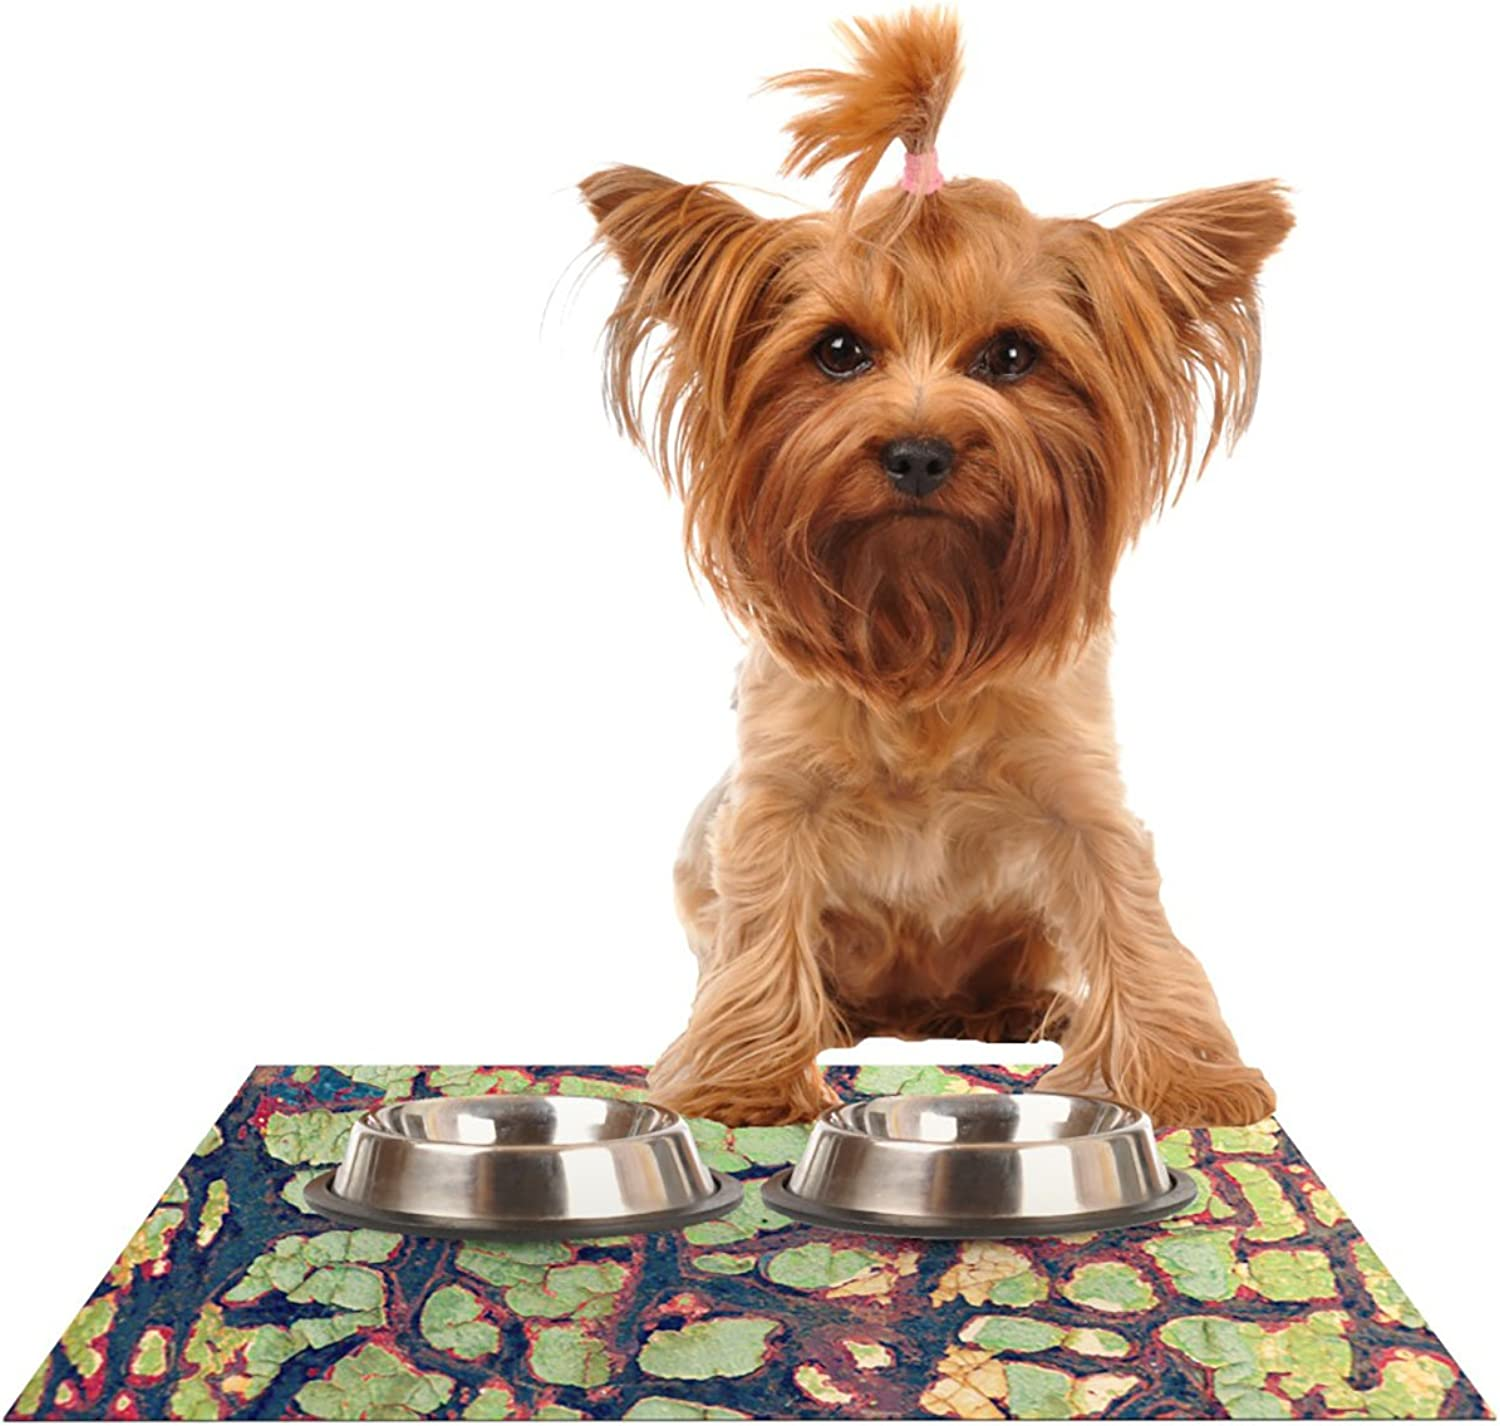 Kess InHouse Robin Dickinson Pretty Patina  Bark Pet Bowl Placemat for Dog and Cat Feeding Mat, 24 by 15Inch